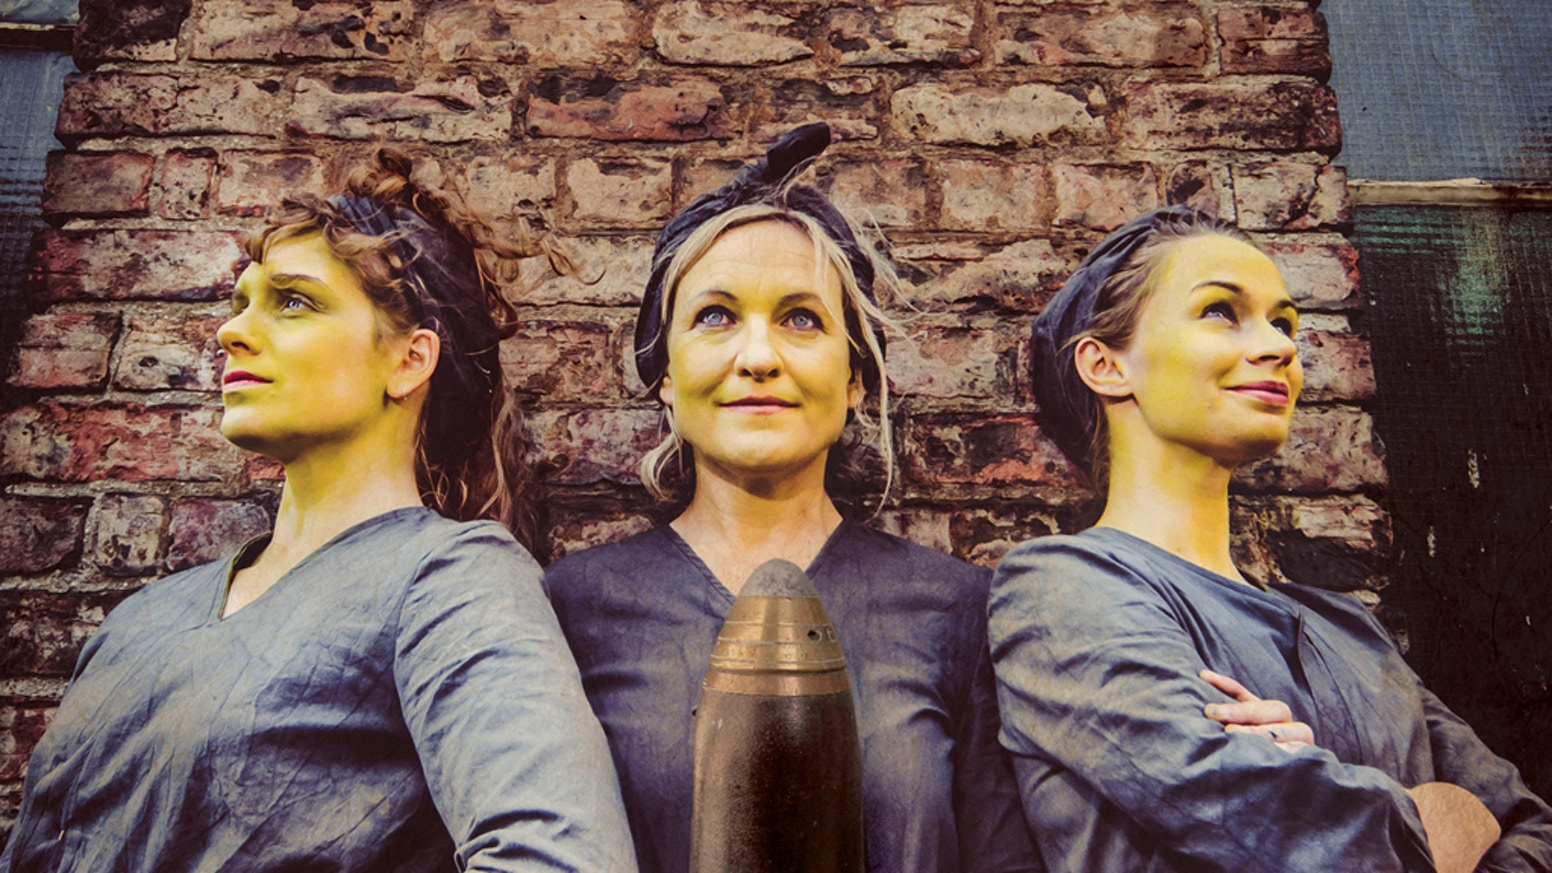 Fun in the Oven are taking their show 'Canary' to the prestigious Prague Fringe Festival 2019 thanks to the support of 129 Kickstarter backers!